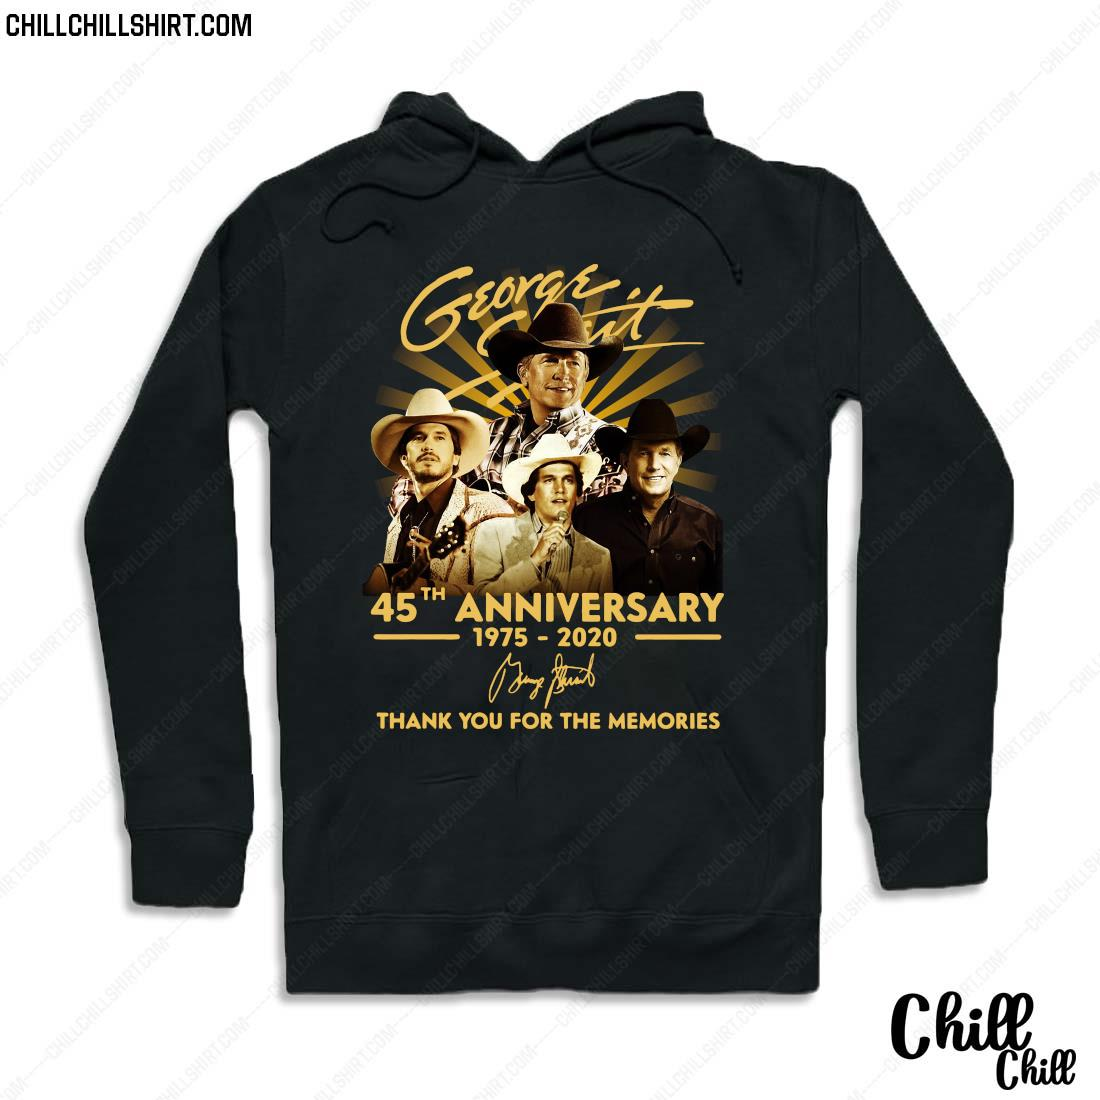 George Strait 45th Anniversary 1975-2020 Signature Thank You For The Memories Shirt Hoodie